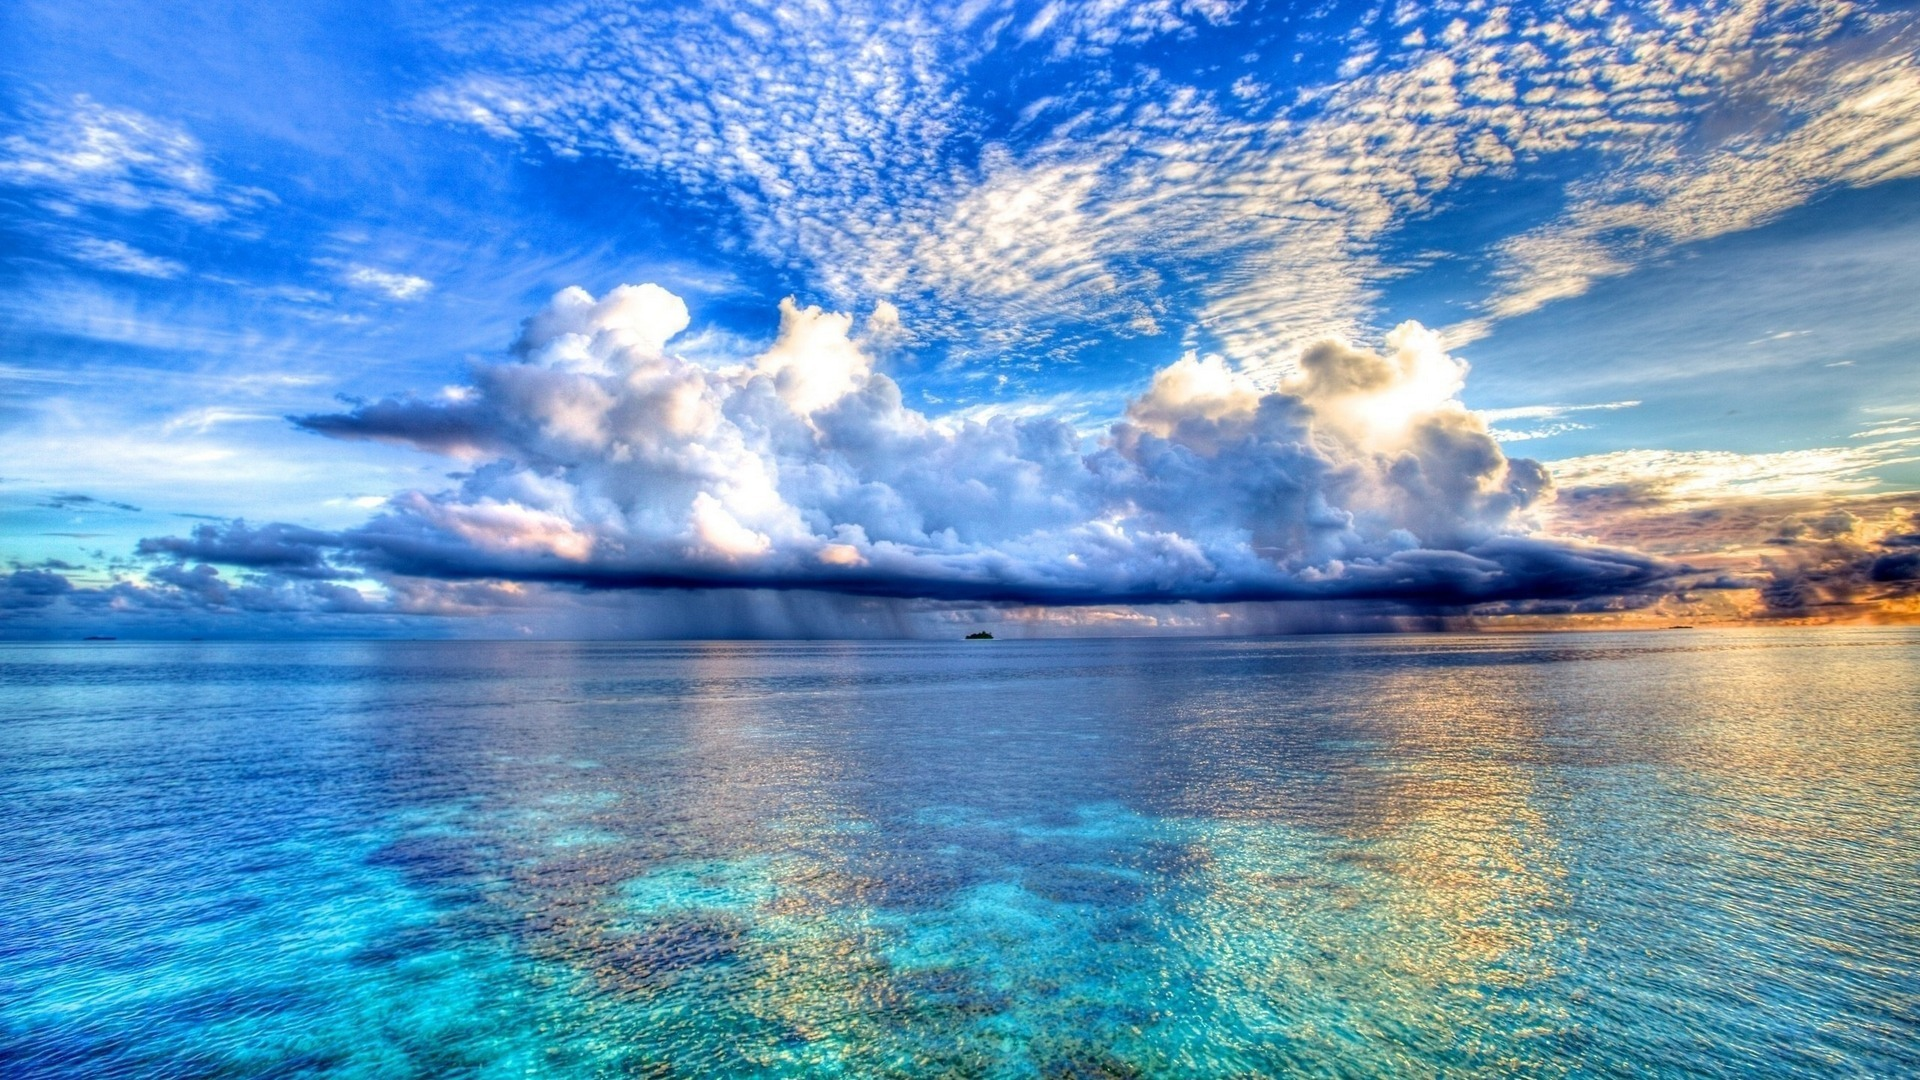 Description Download Ocean Wallpaper is a hi res Wallpaper for pc 1920x1080